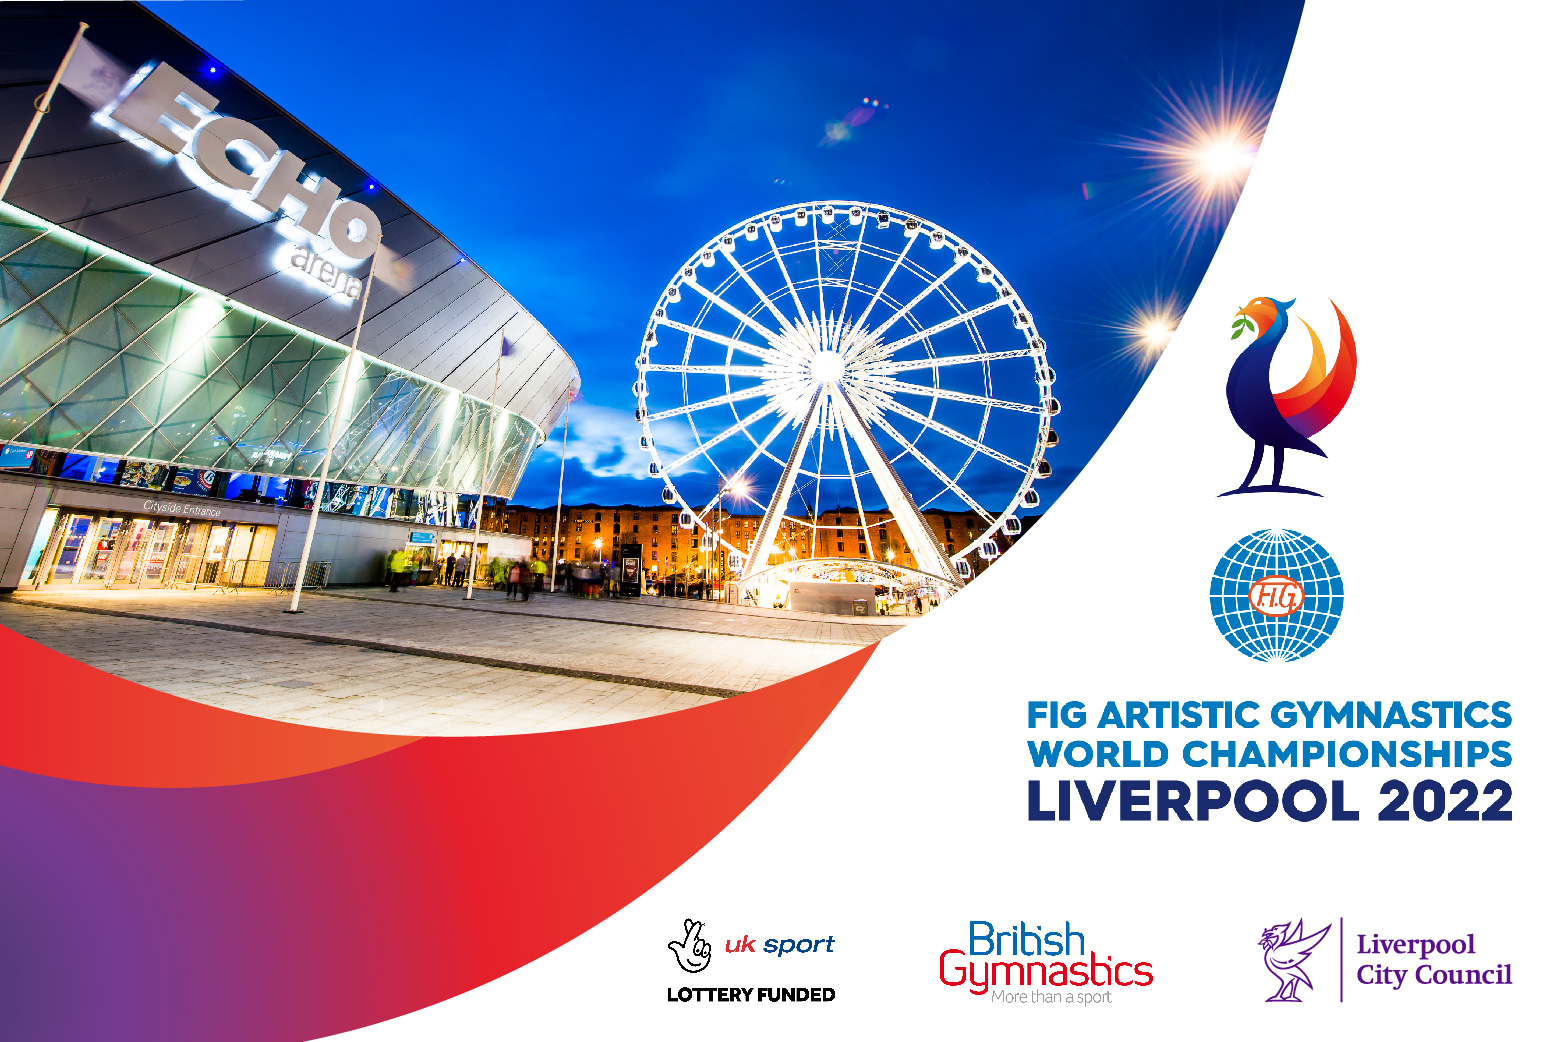 Liverpool to stage 2022 Gymnastic World Championships